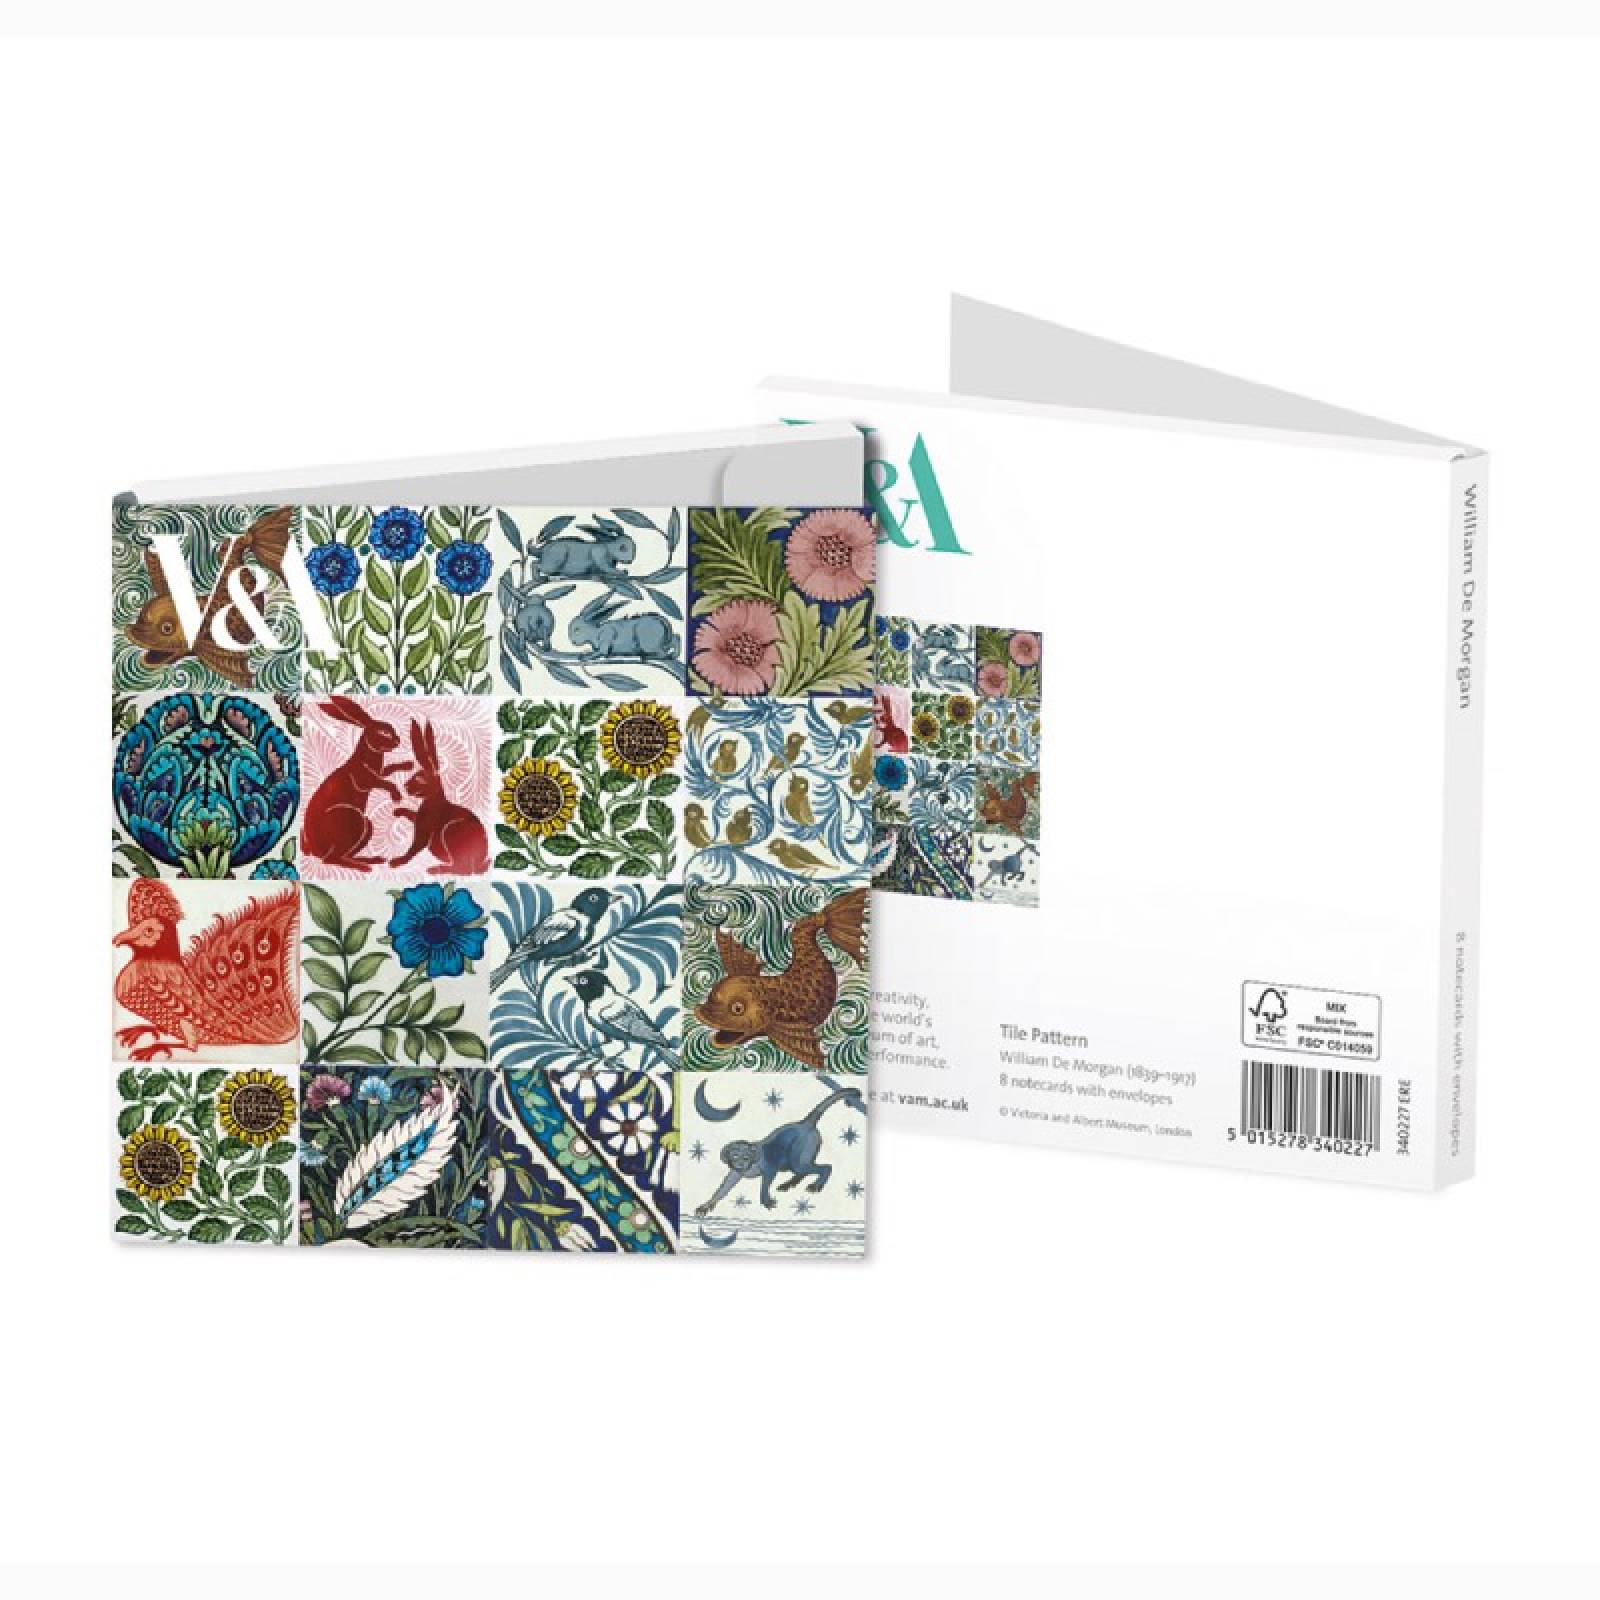 William De Morgan Tiles - Pack Of 8 Notecards And Envelopes